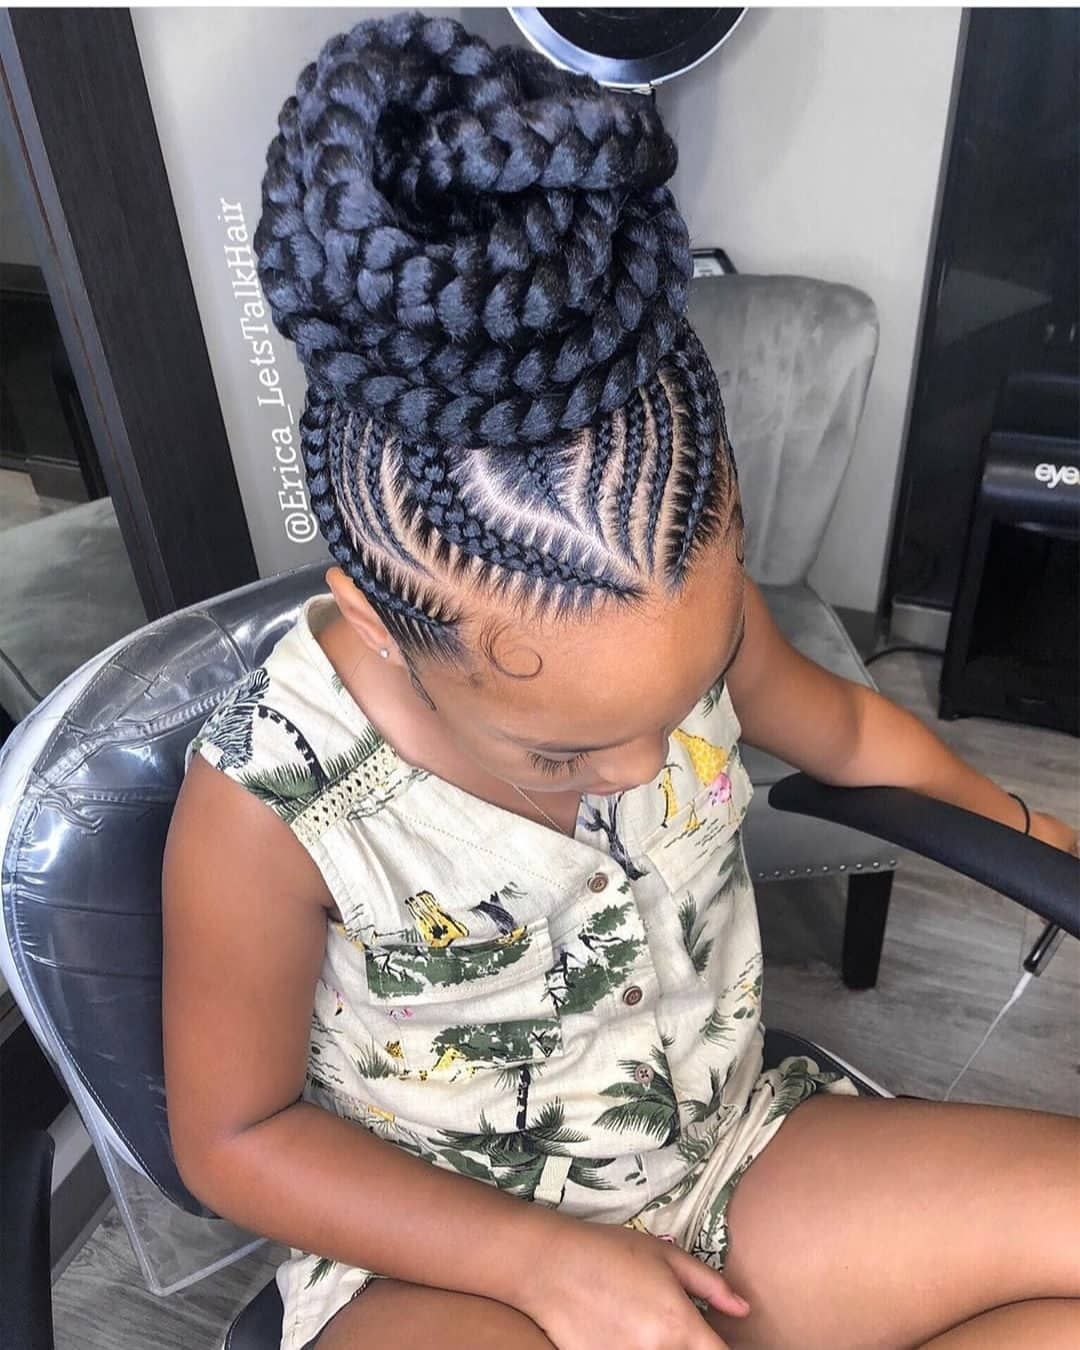 Top African Hairstyles On Instagram Neatly Braided Erica Letstalkhair Bunlife Topkn Cornrow Hairstyles Braided Cornrow Hairstyles Cool Braid Hairstyles